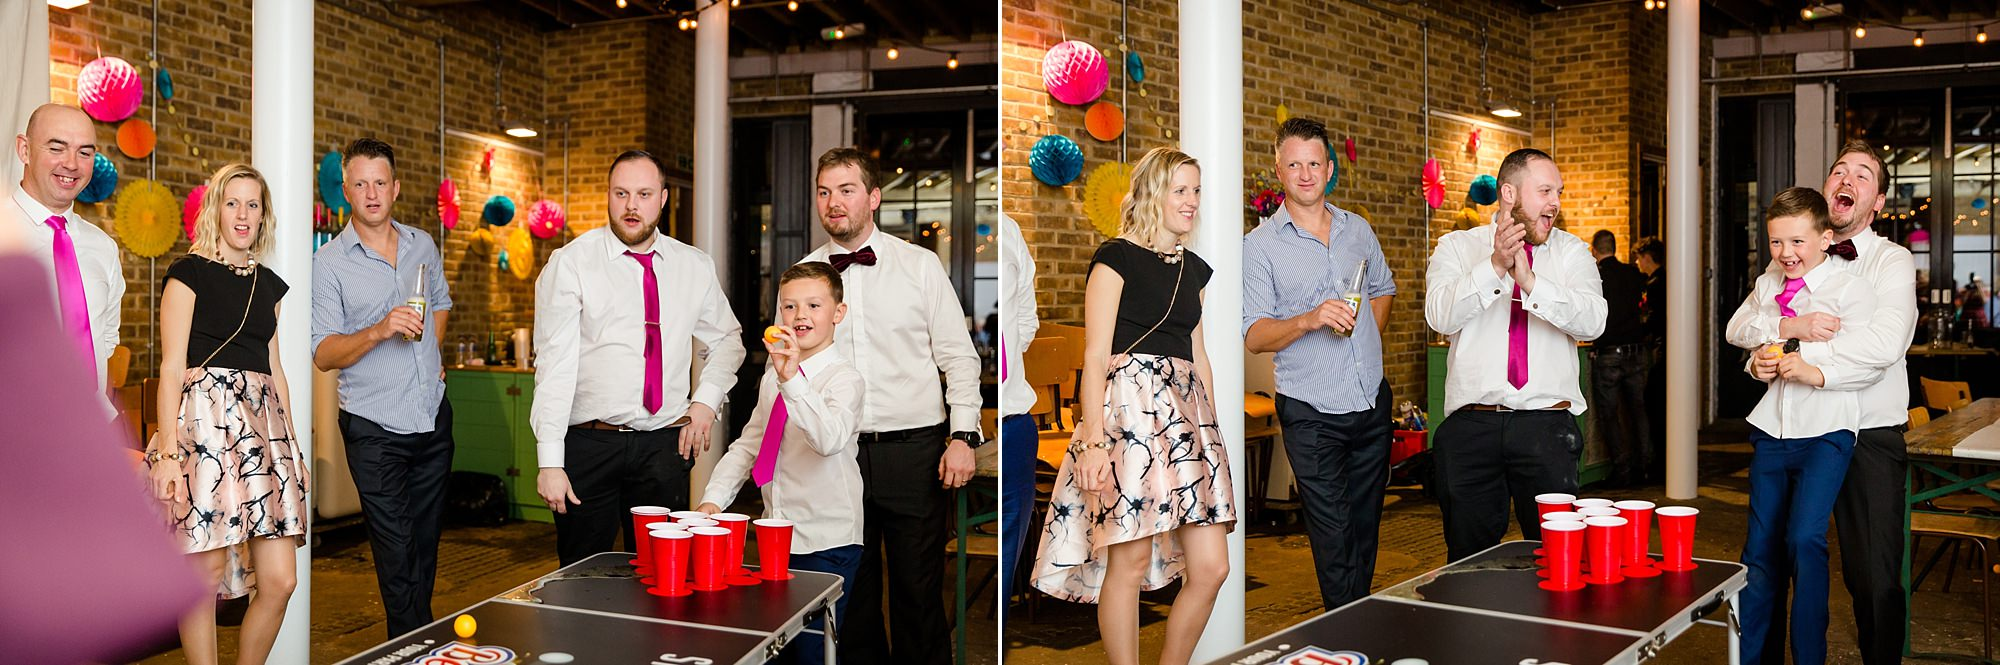 Fun London Wedding guests play beer pong with groom